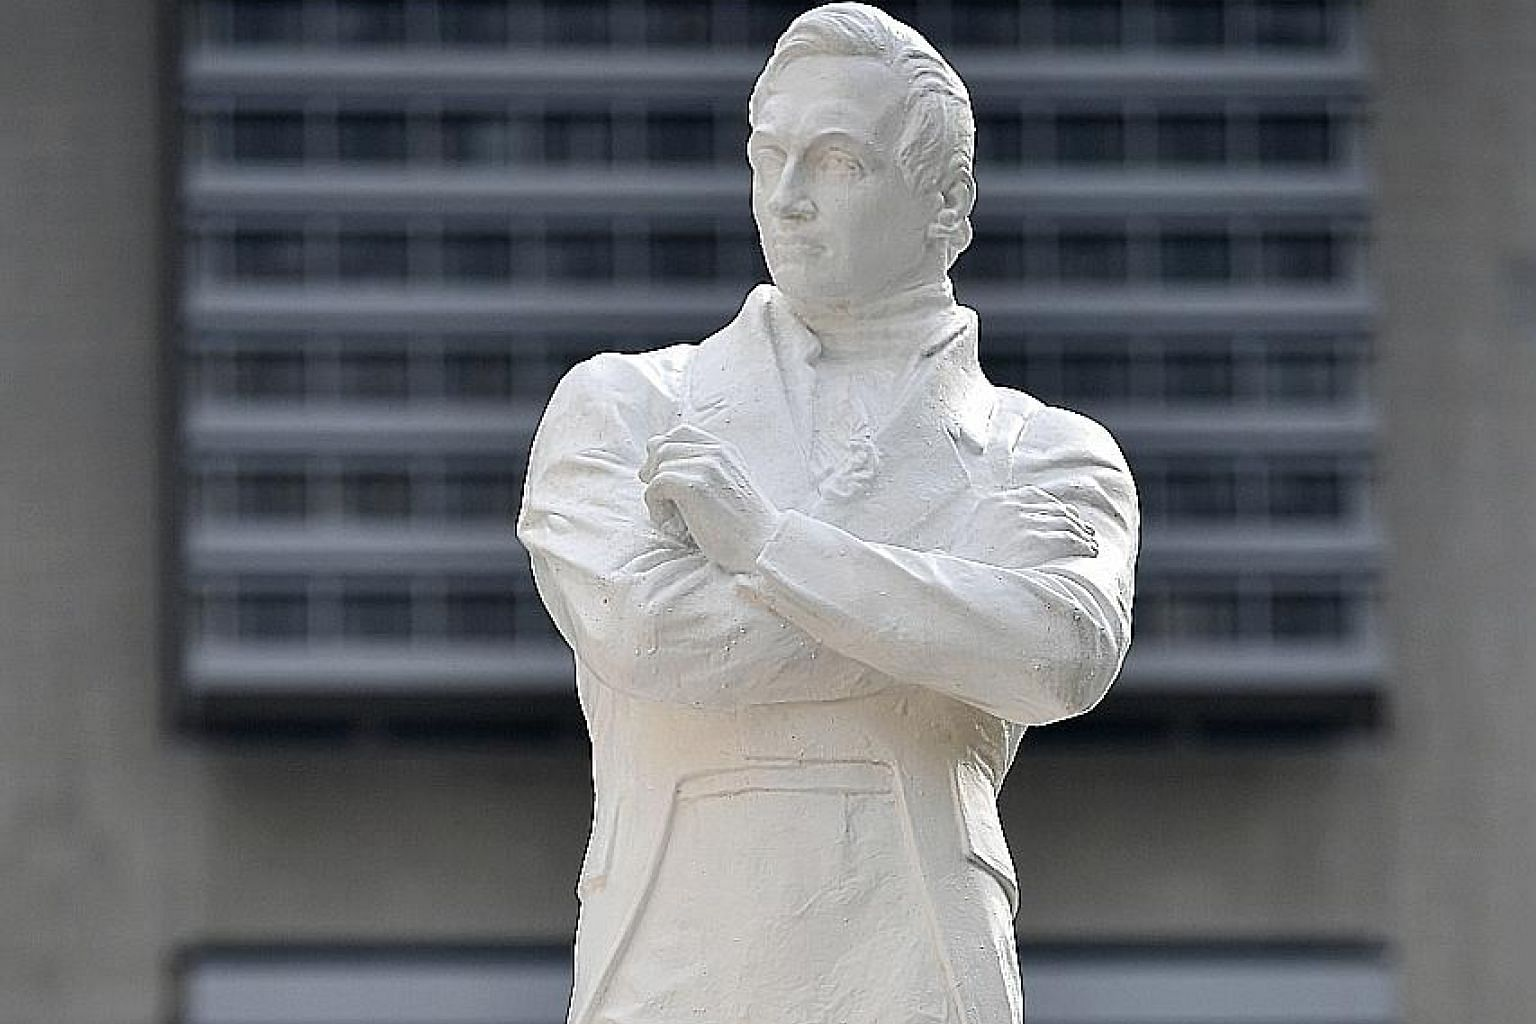 The Singapore Bicentennial commemorates Sir Stamford Raffles' arrival in Singapore in 1819. While some condemn the ideology of colonialism, we should not denounce everything linked to our colonial history, says the writer.